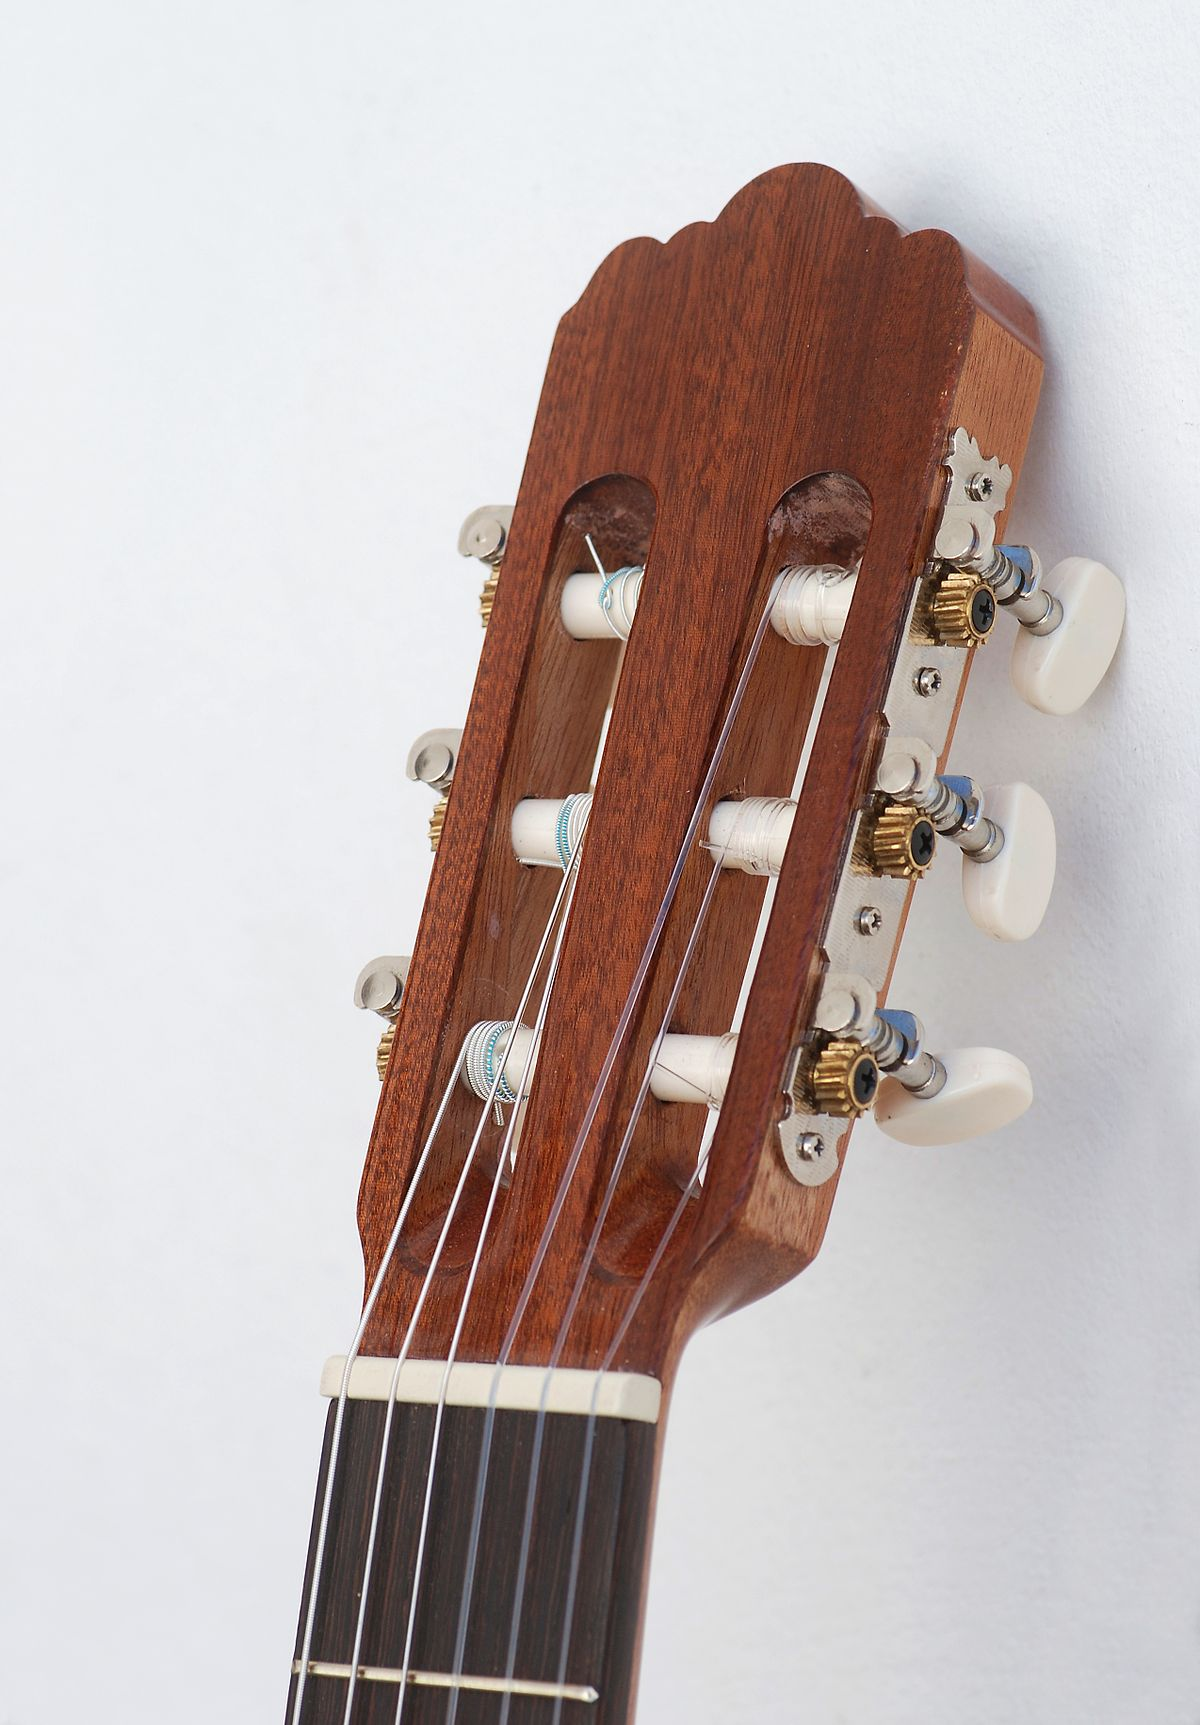 Headstock - Wikipedia